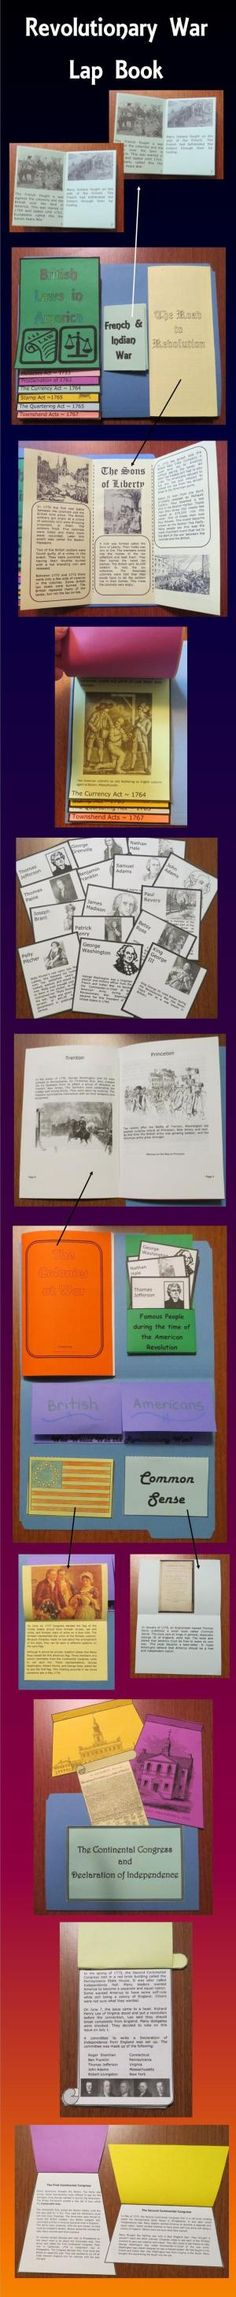 This Revolutionary War Lap Book contains interactive organizers which may be glued onto a file folder to form a lap book, added to interactive notebooks, or used individually. $ by corrine